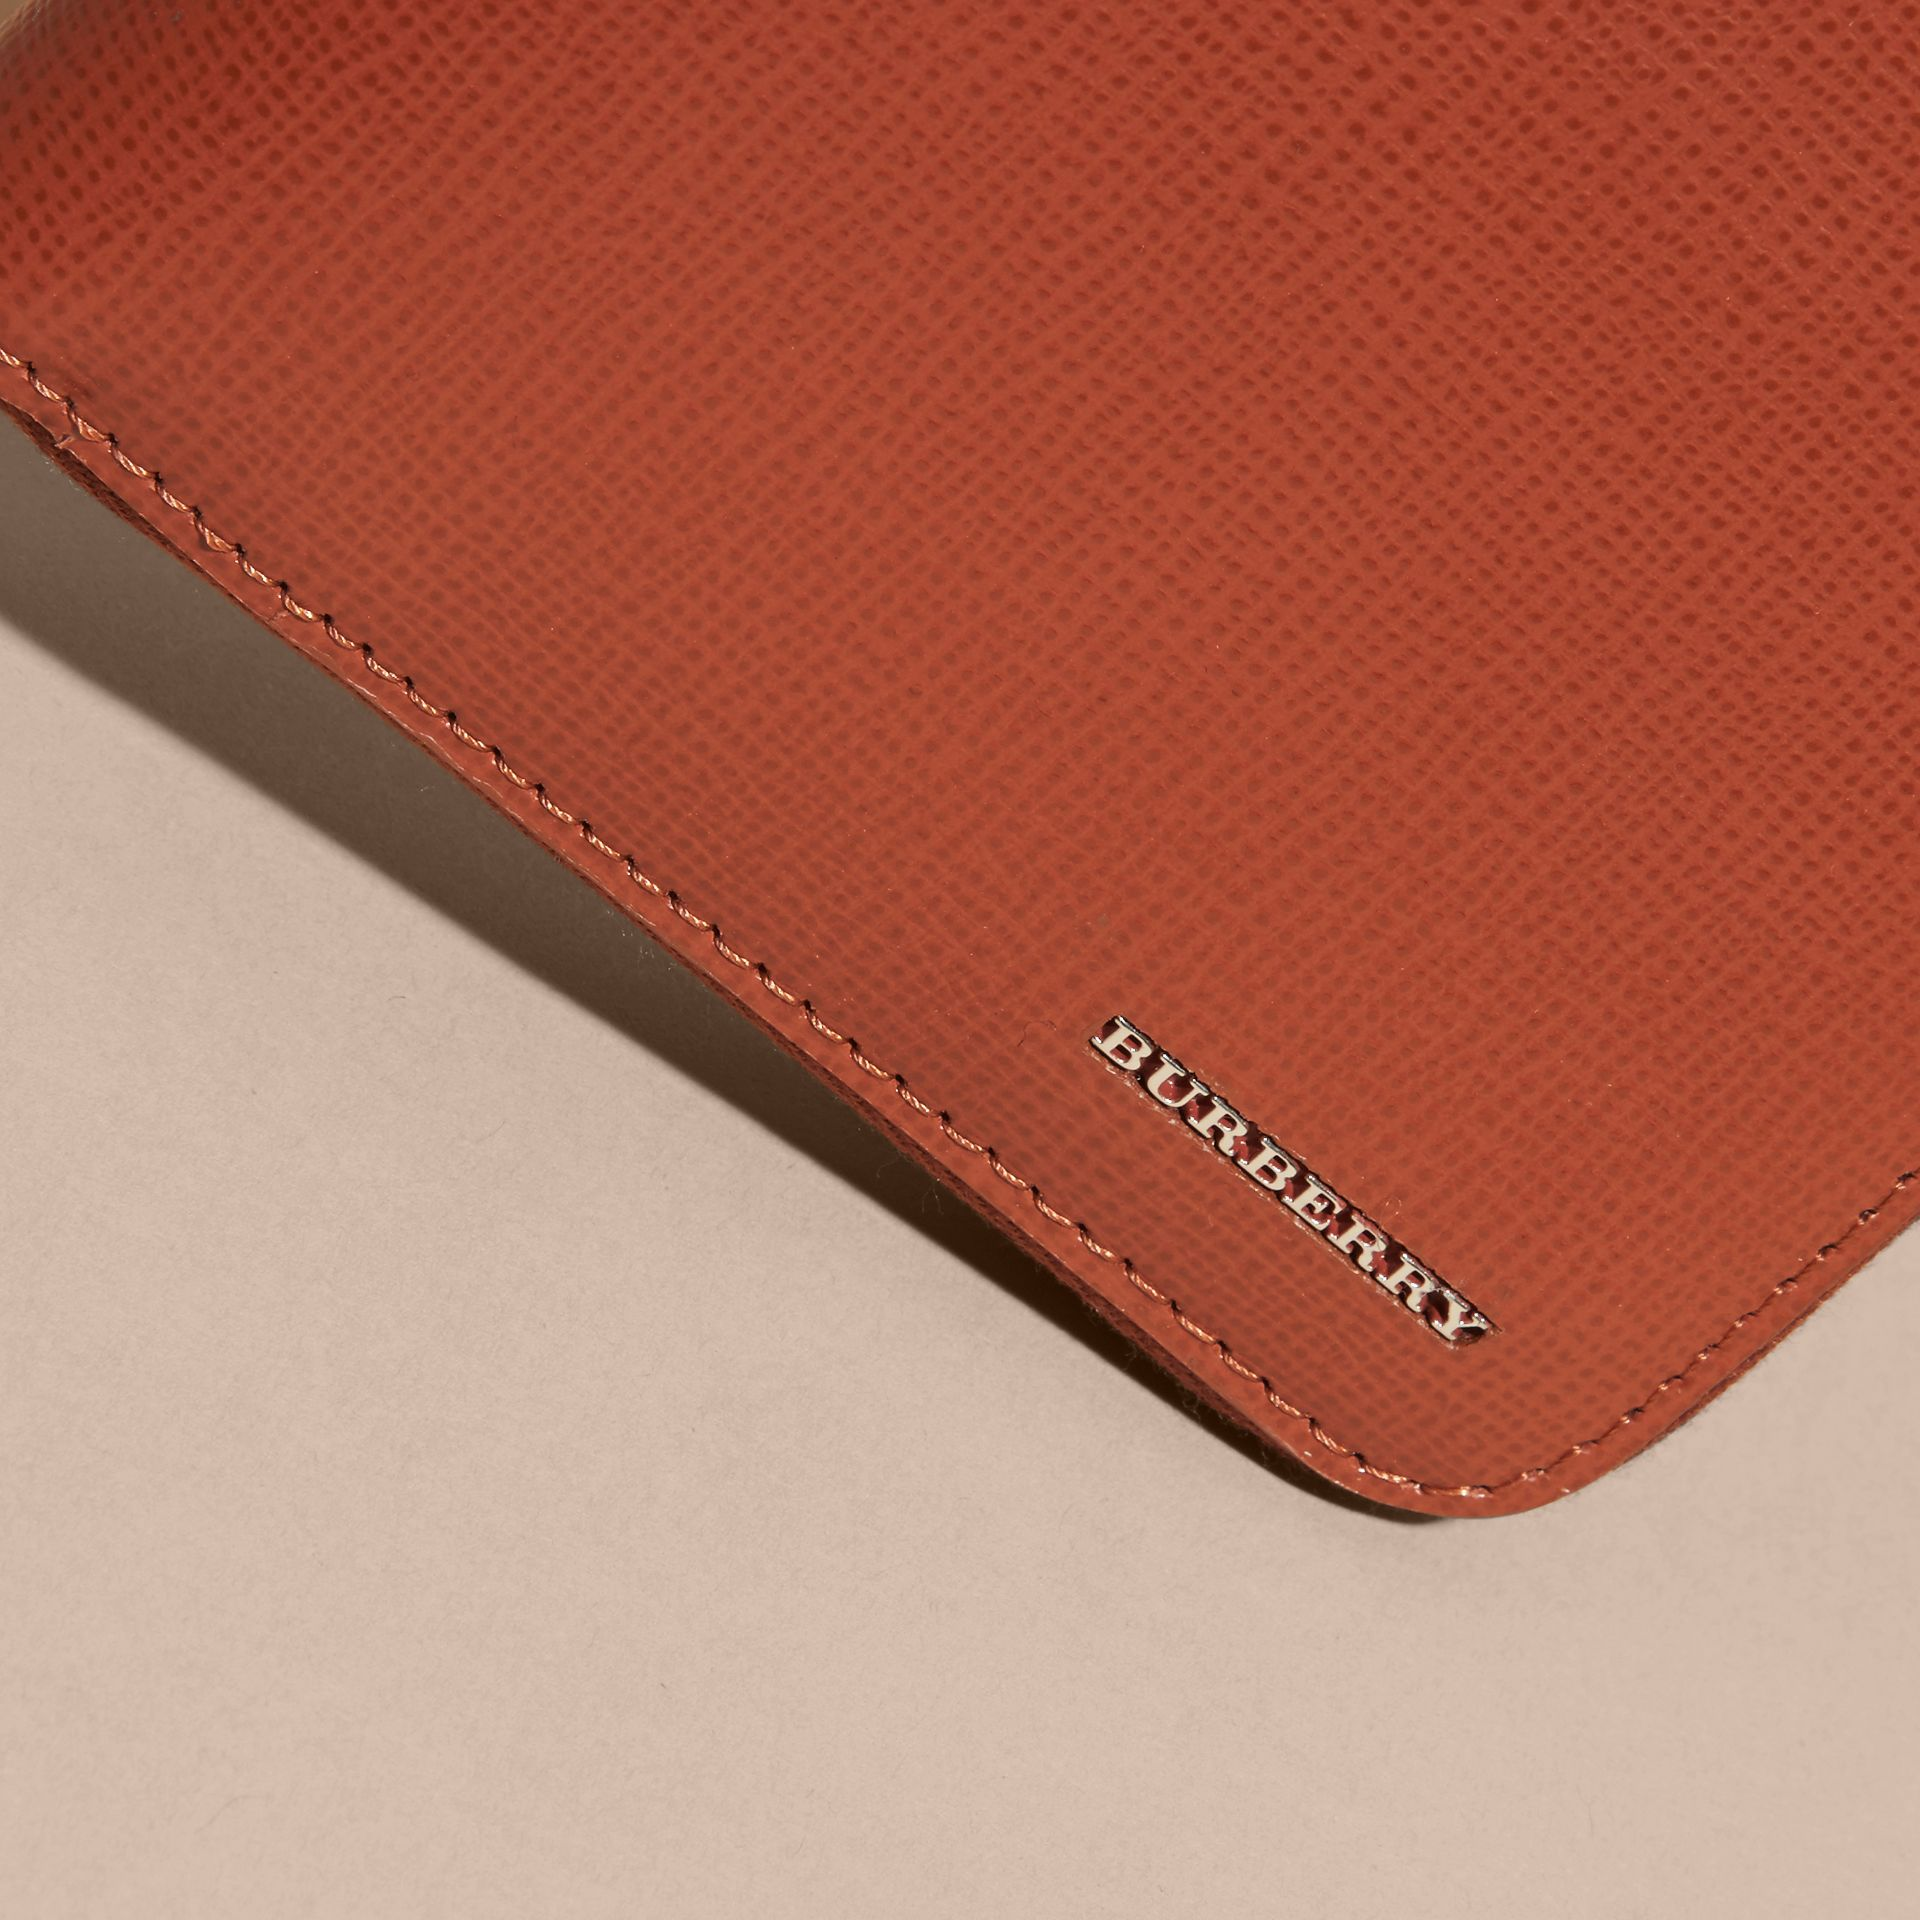 London Leather Ziparound Wallet Burnt Sienna - gallery image 3